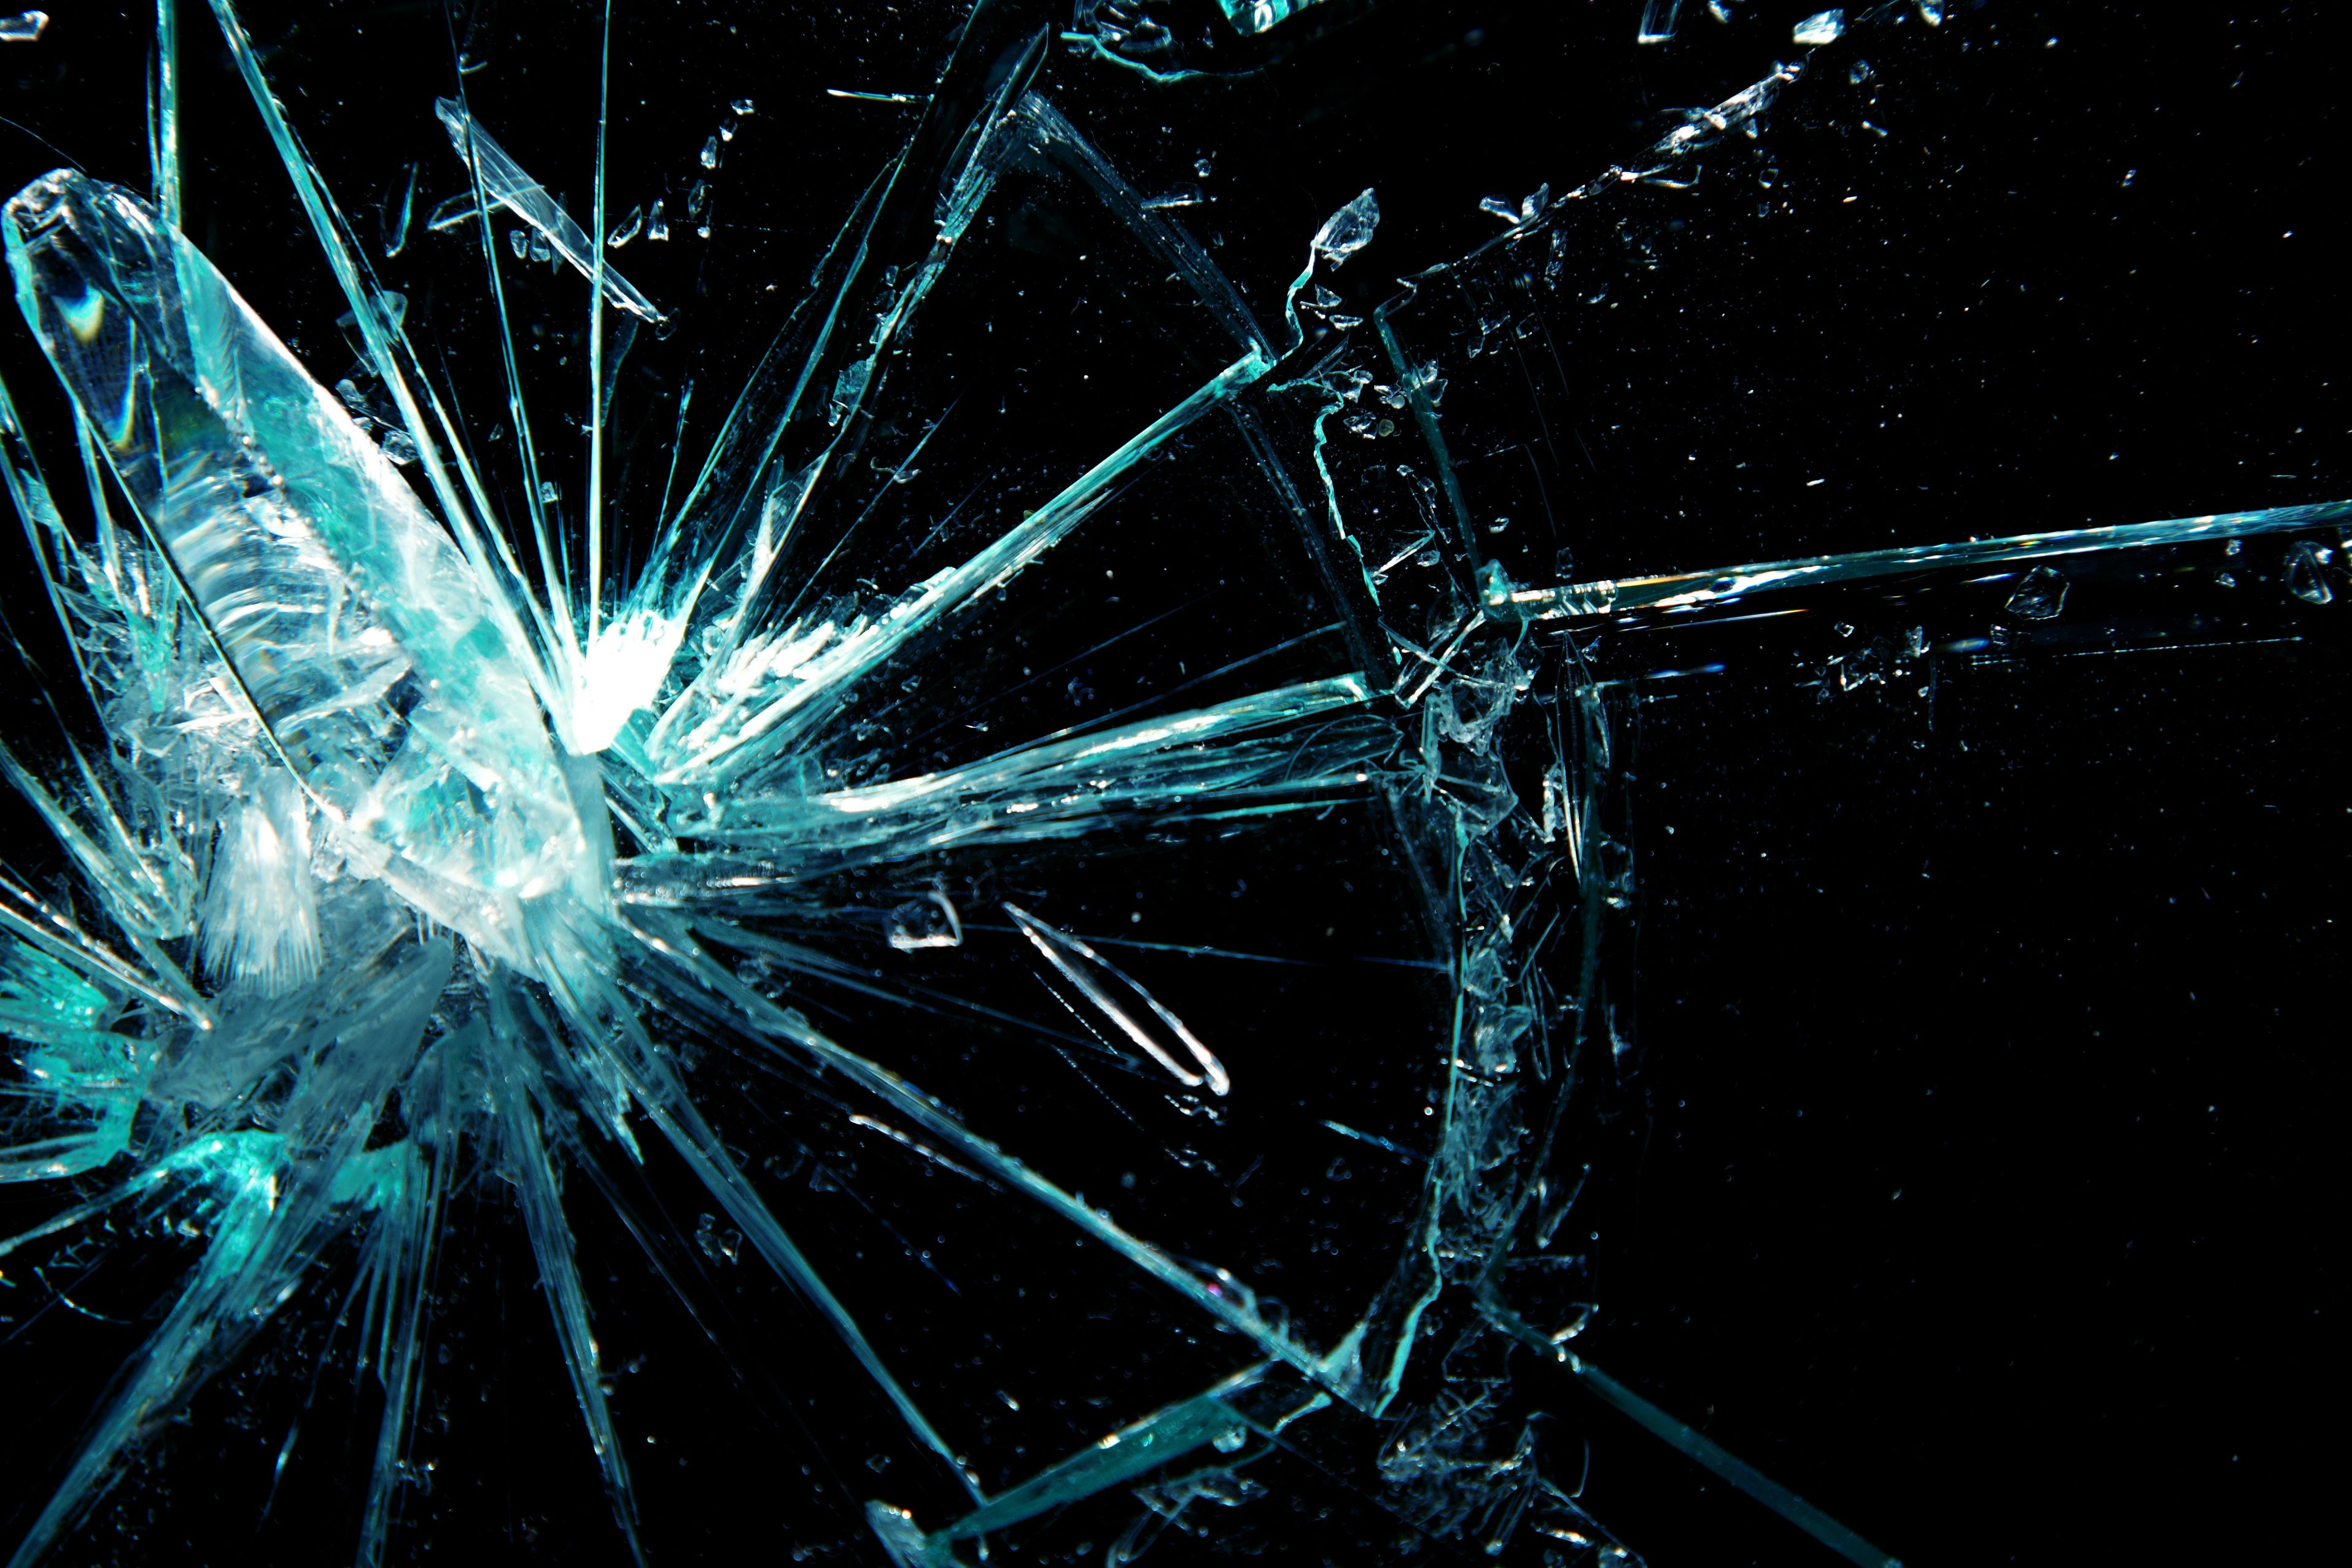 Broken screen wallpaper 3 of 49 with broken glass animation hd broken screen wallpaper 3 of 49 with broken glass animation voltagebd Gallery